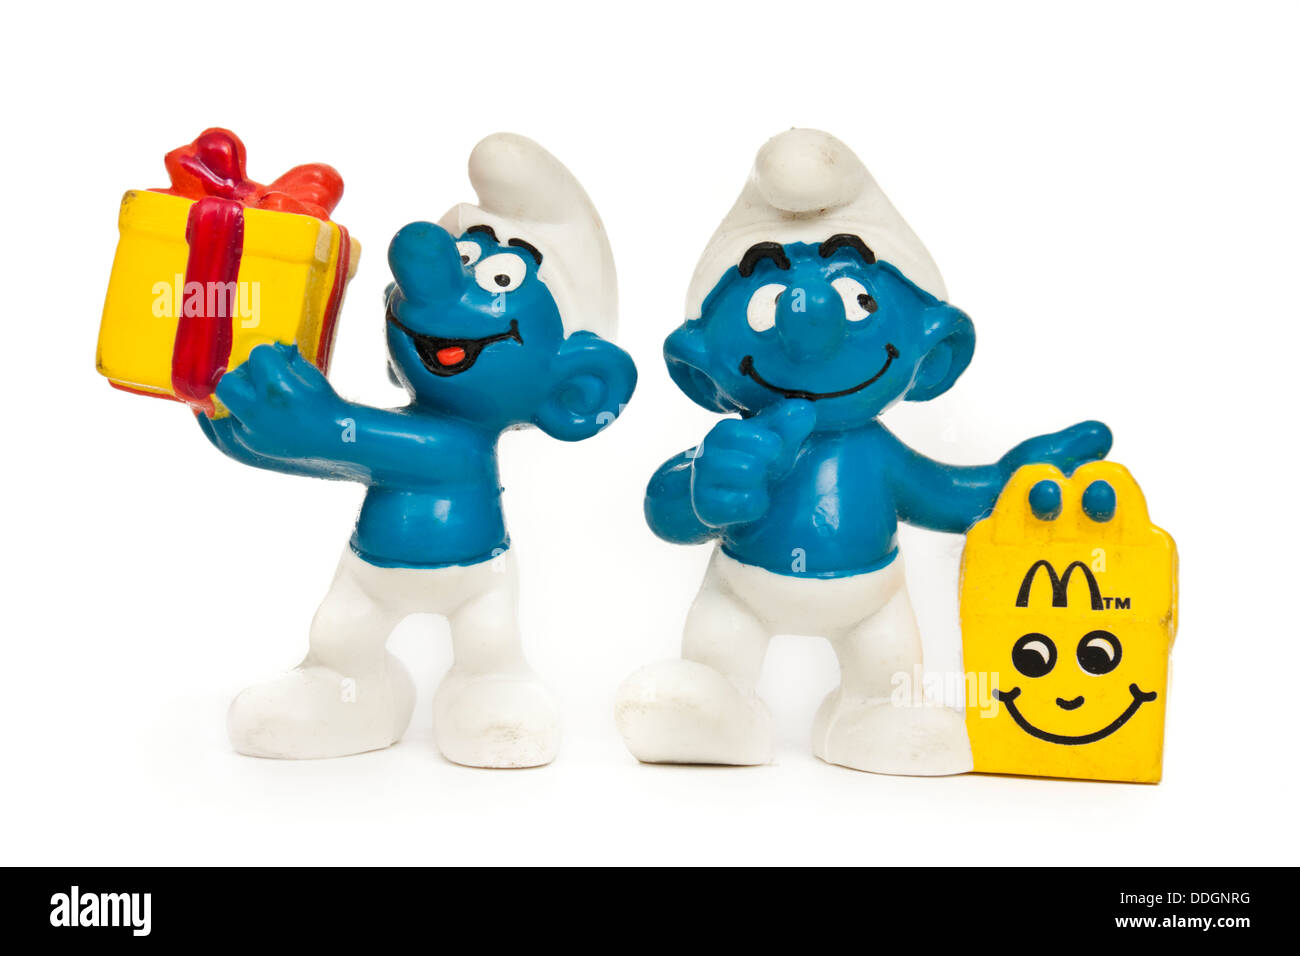 Pair of vintage 1996 McDonalds 'Smurf' promotional toys - Stock Image